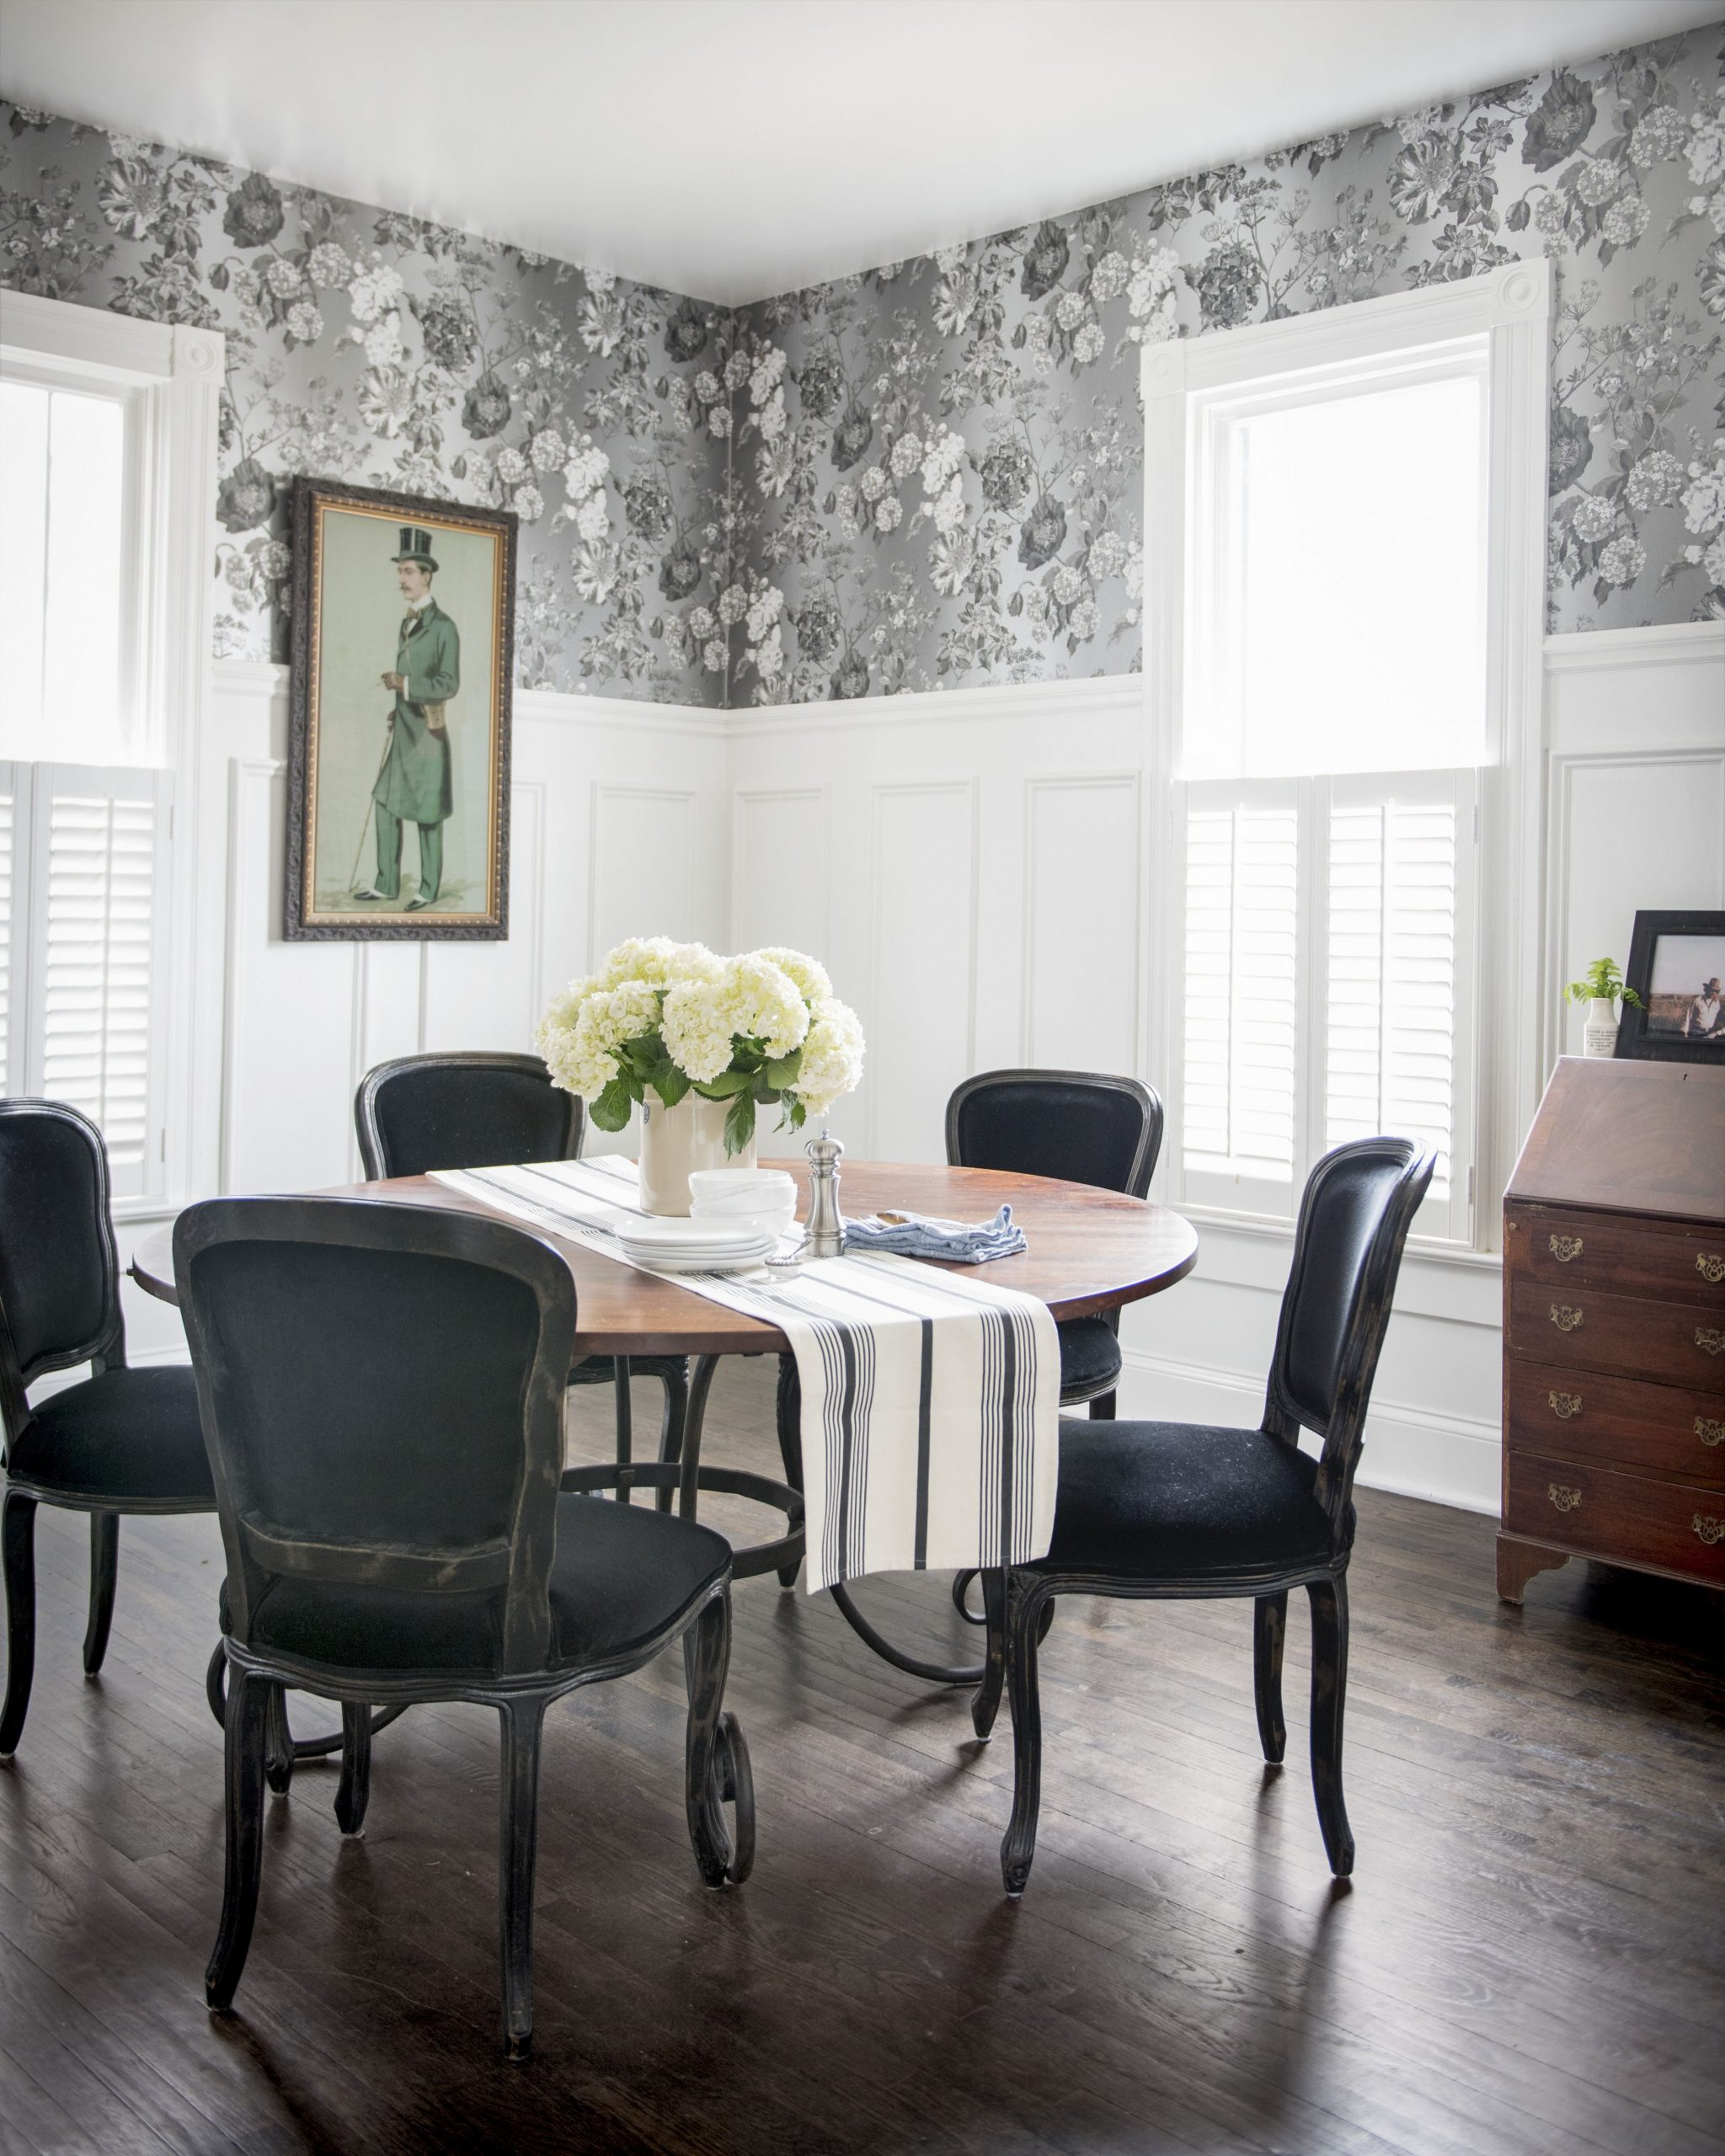 10 Best Dining Room Decorating Ideas - Pictures of Dining Room Decor - Dining Room Accessories Ideas